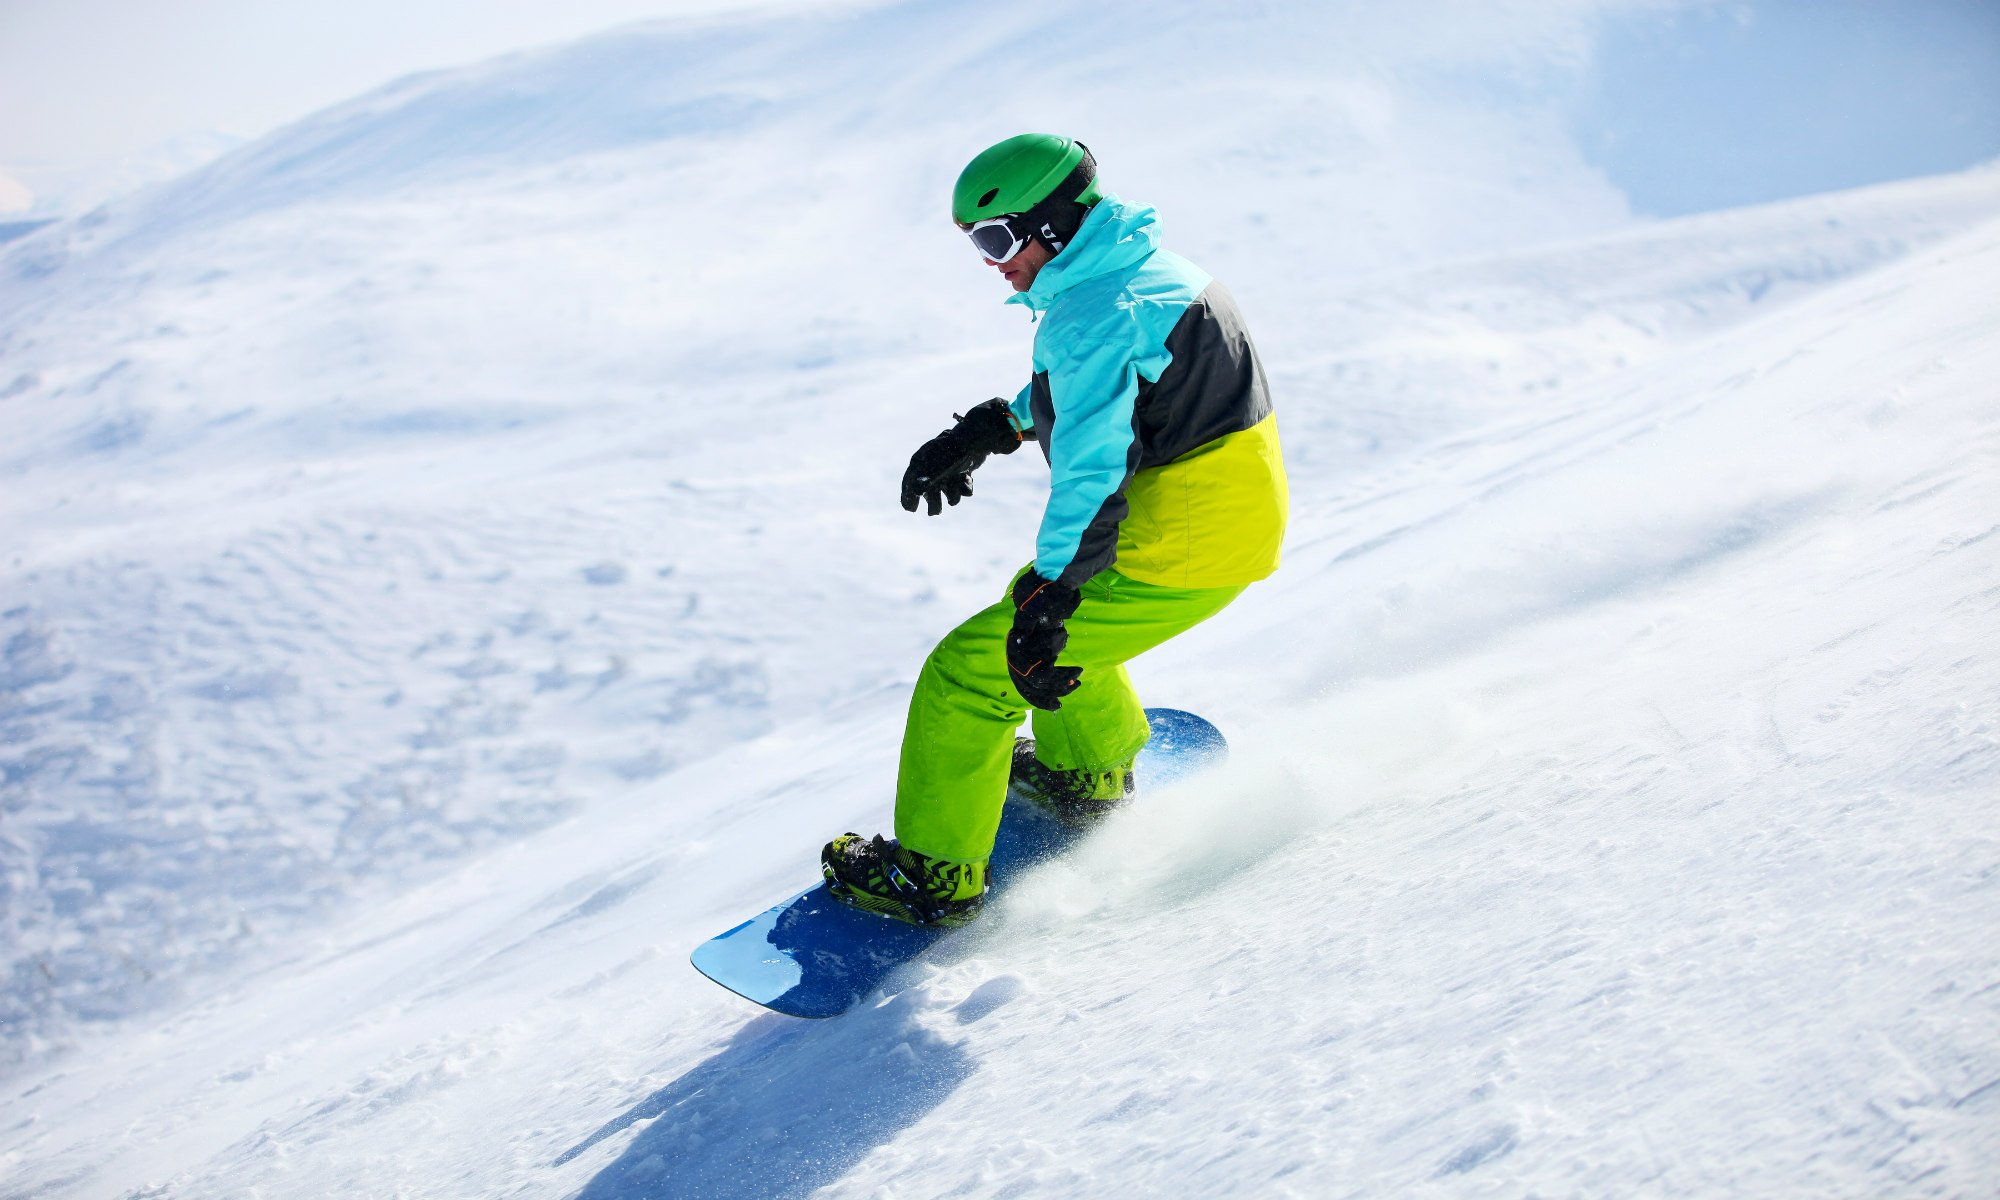 Snowboarder riding on off-piste terrain.